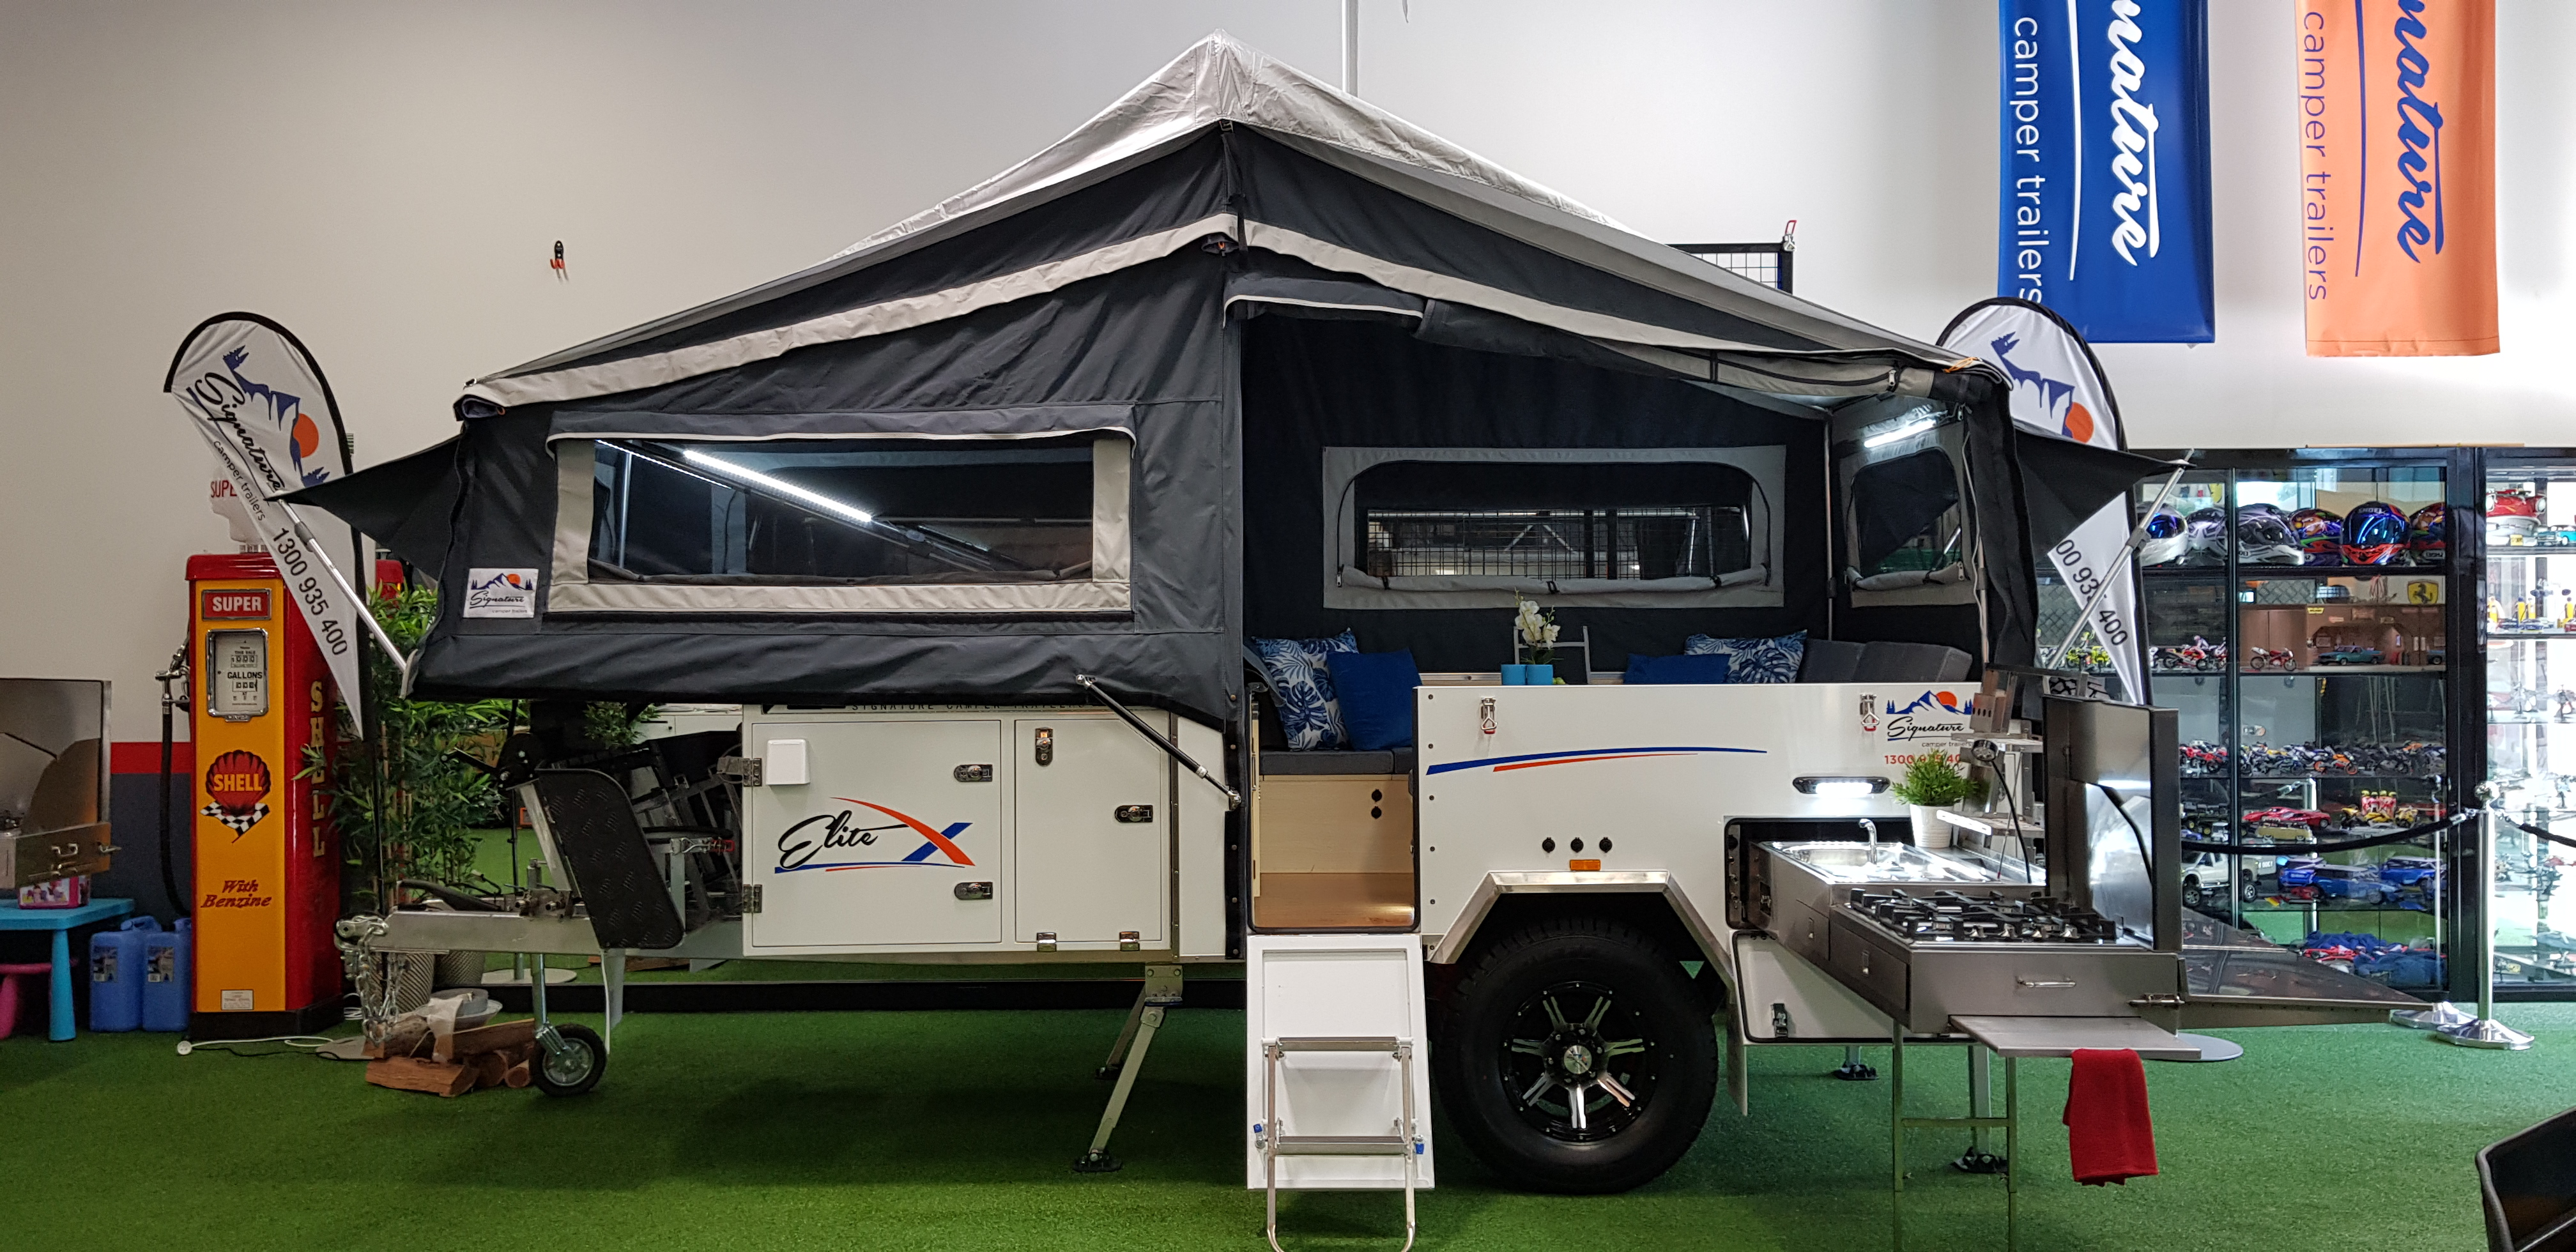 Signature Elite X Camper Trailer Side View Tent Open